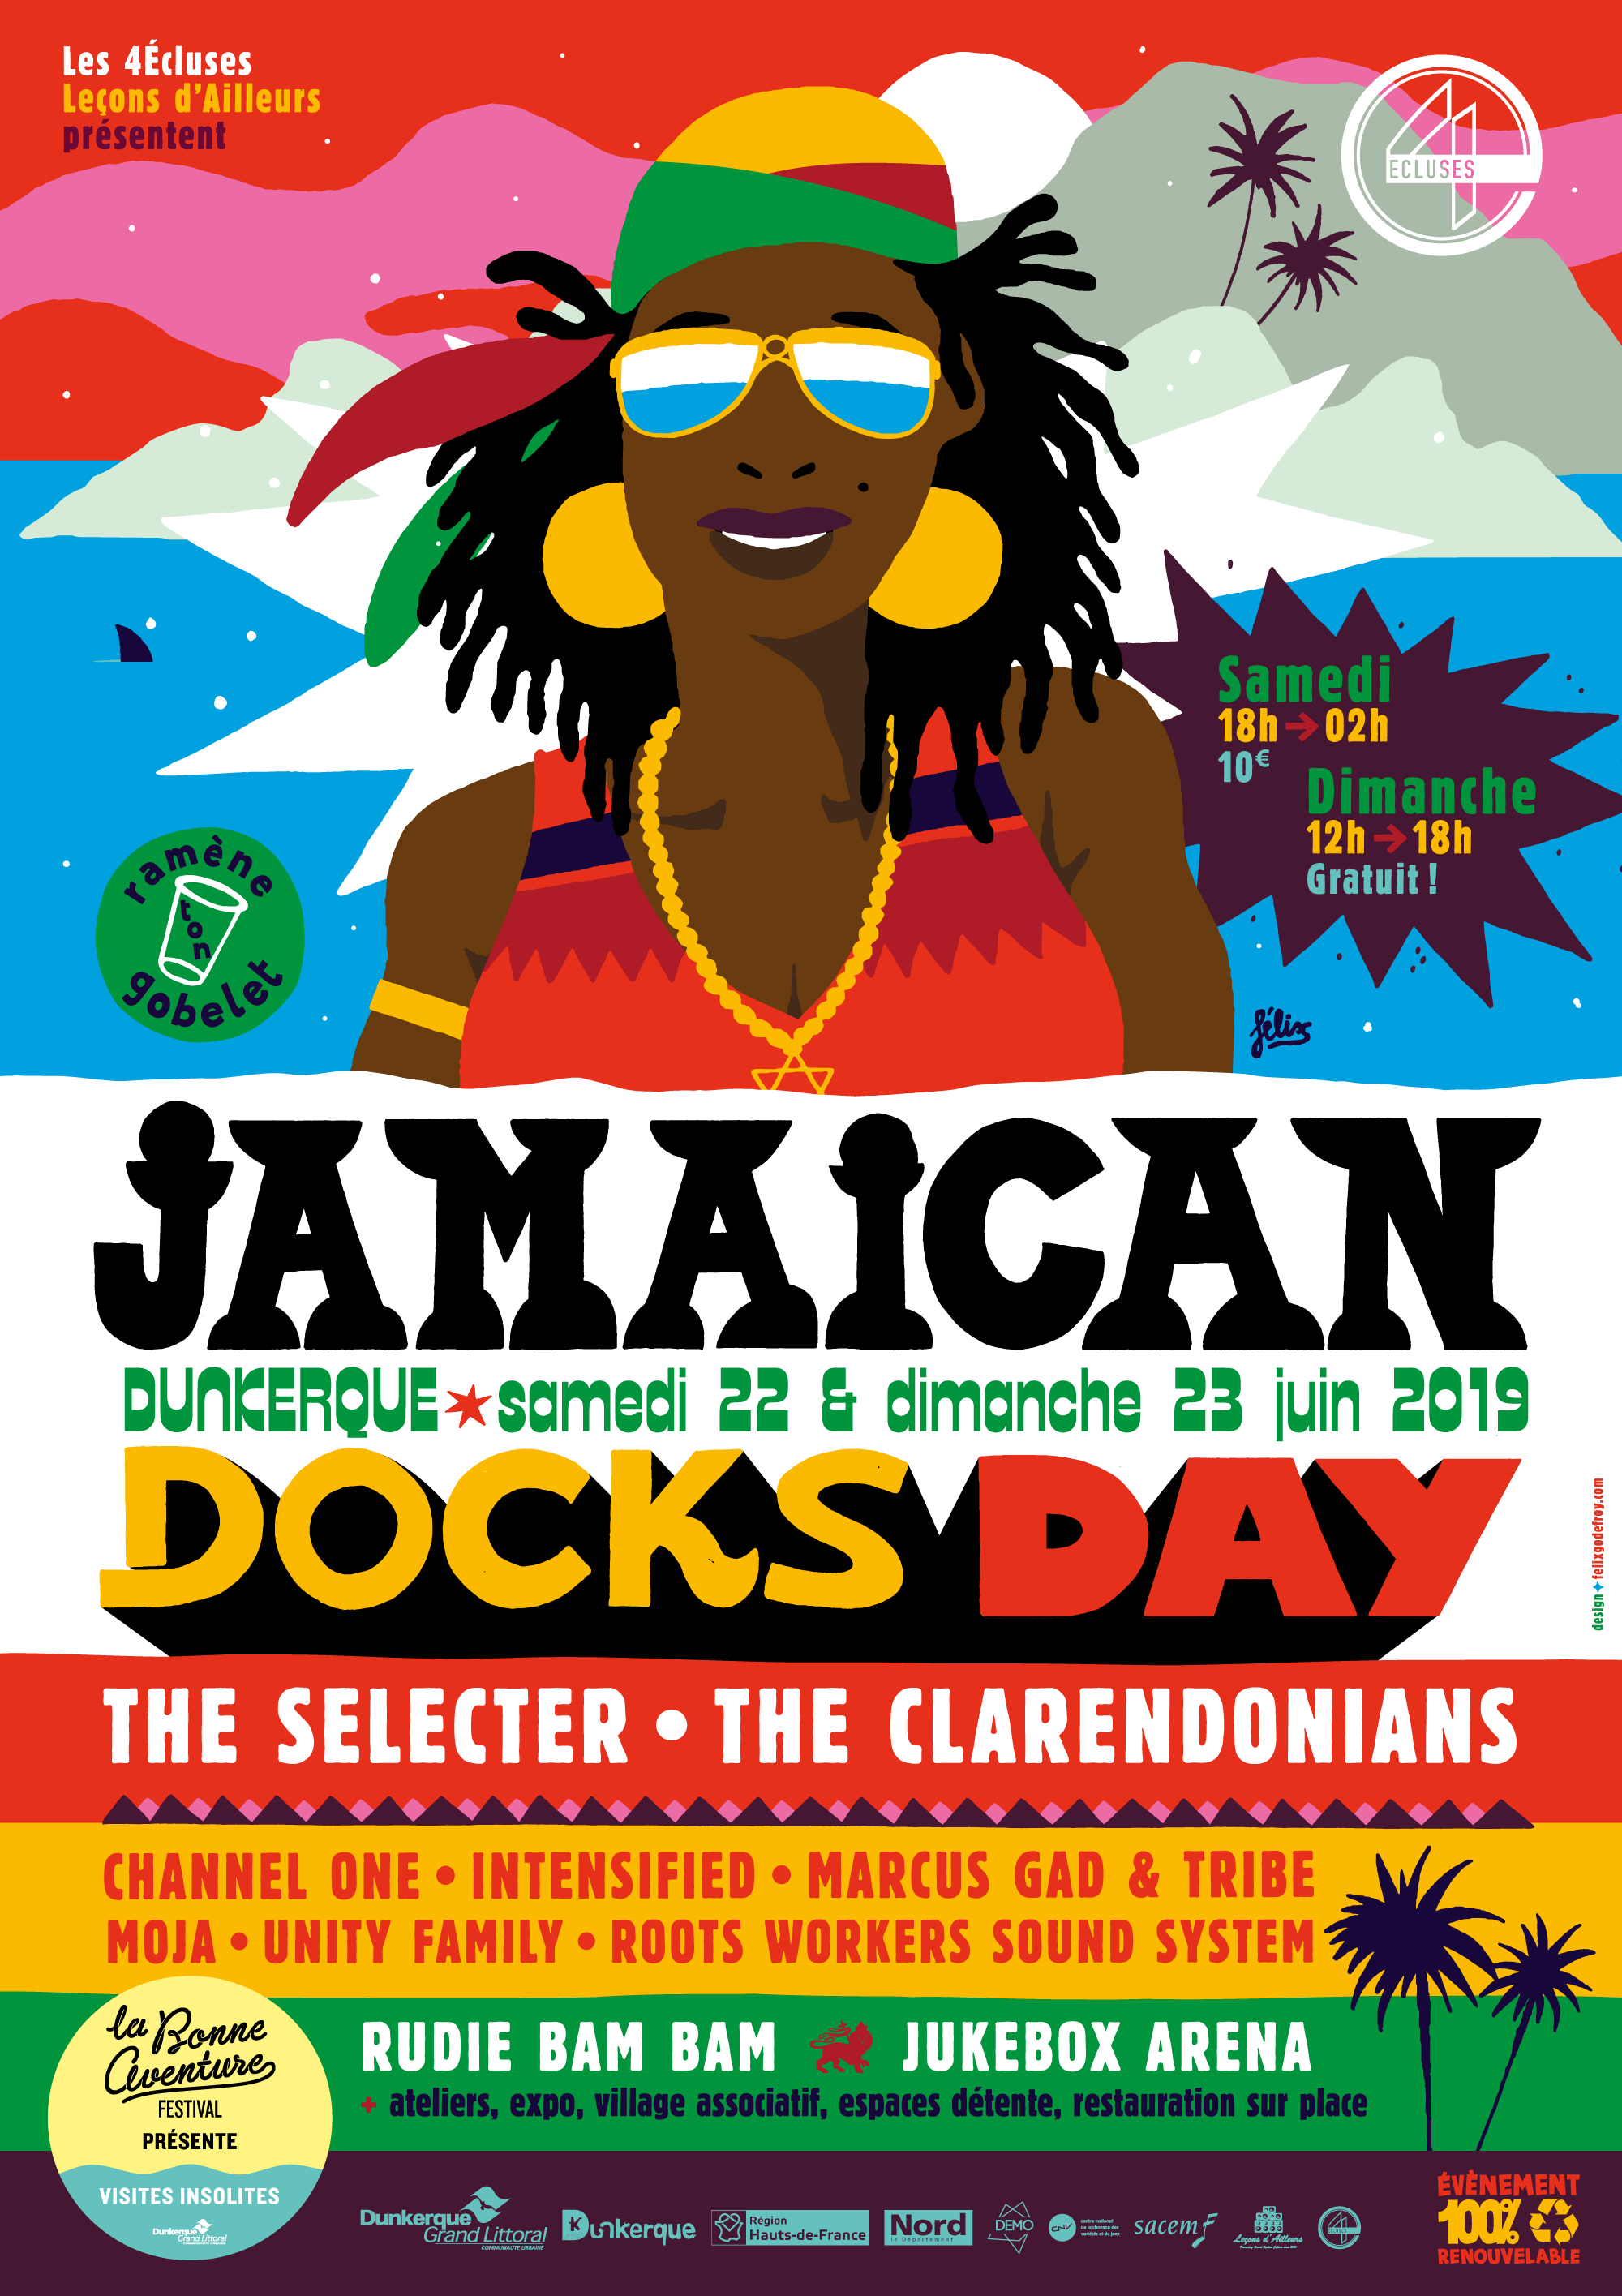 Jamaican Docks Day 2019